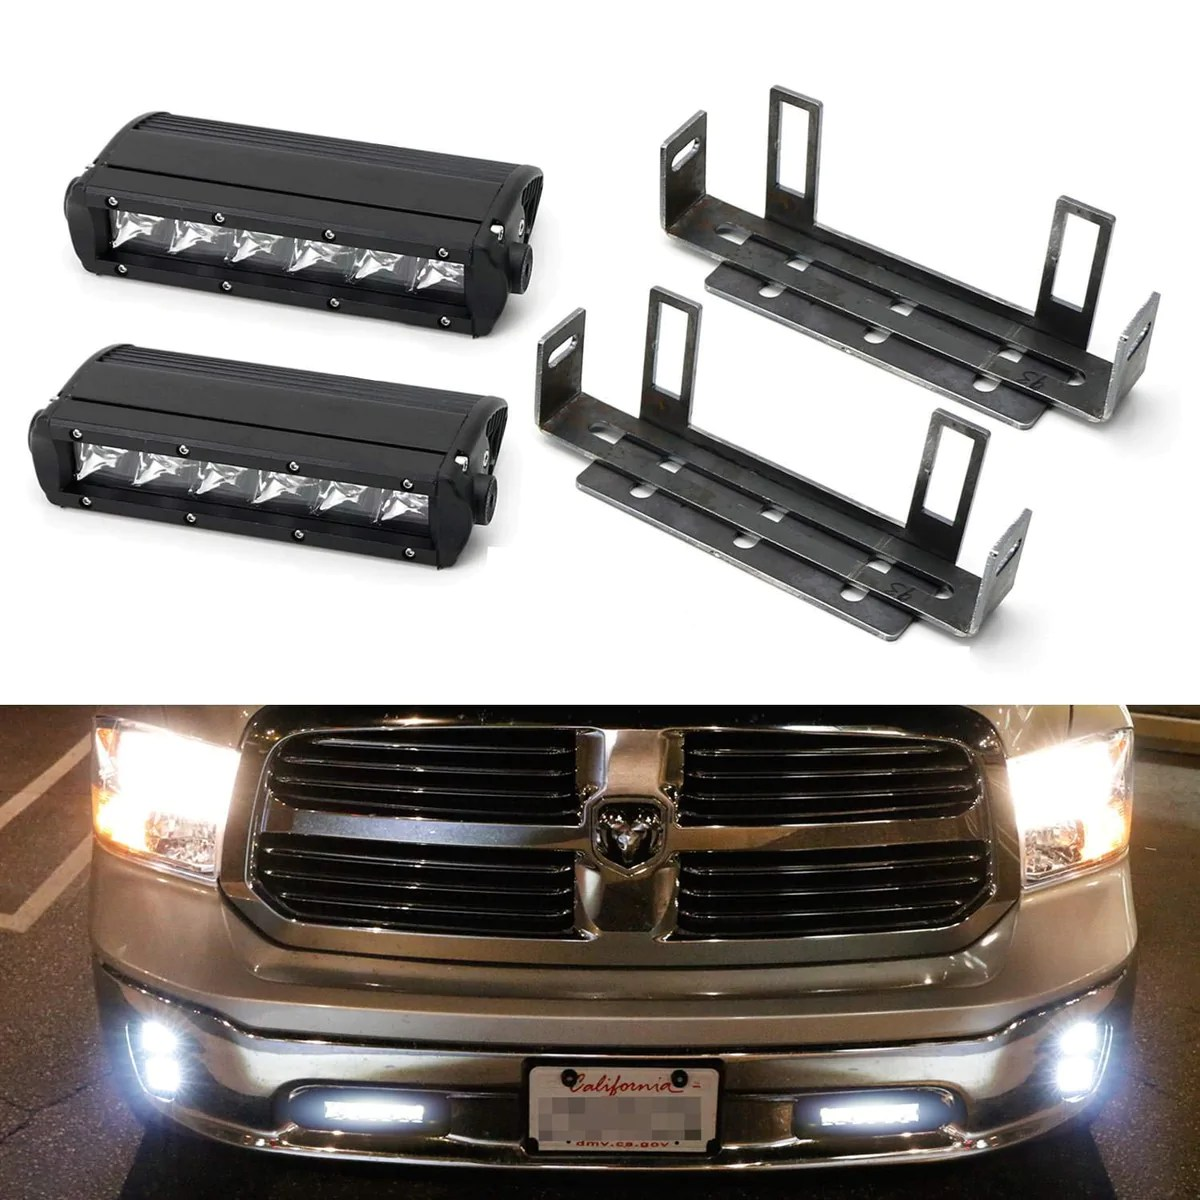 hight resolution of lower bumper led light bar kit for 2011 18 dodge ram 1500 includes 2 30w high power cree led lightbars tow hook opening area brackets on off switch